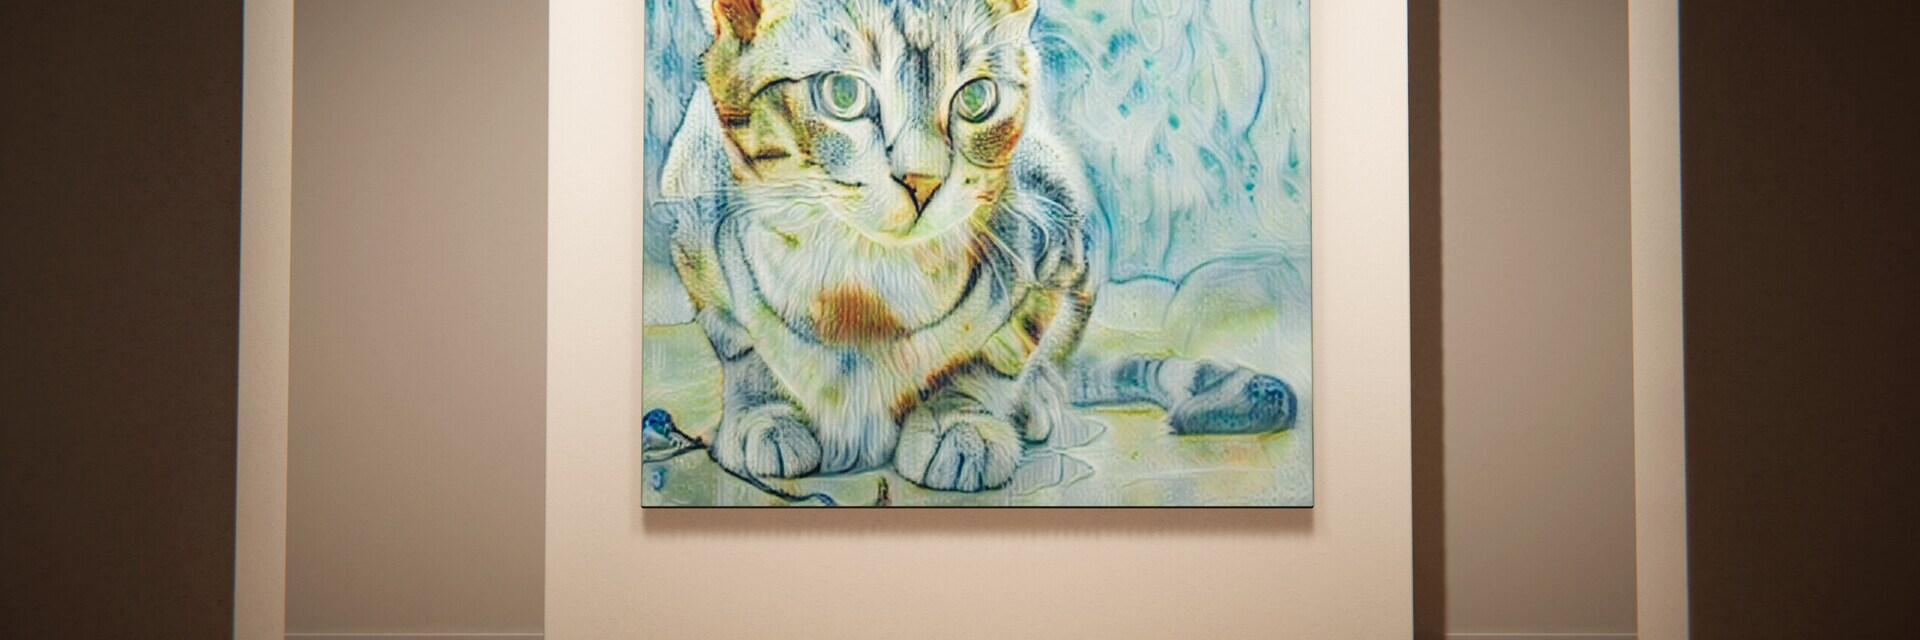 Cat looking at a cat painting